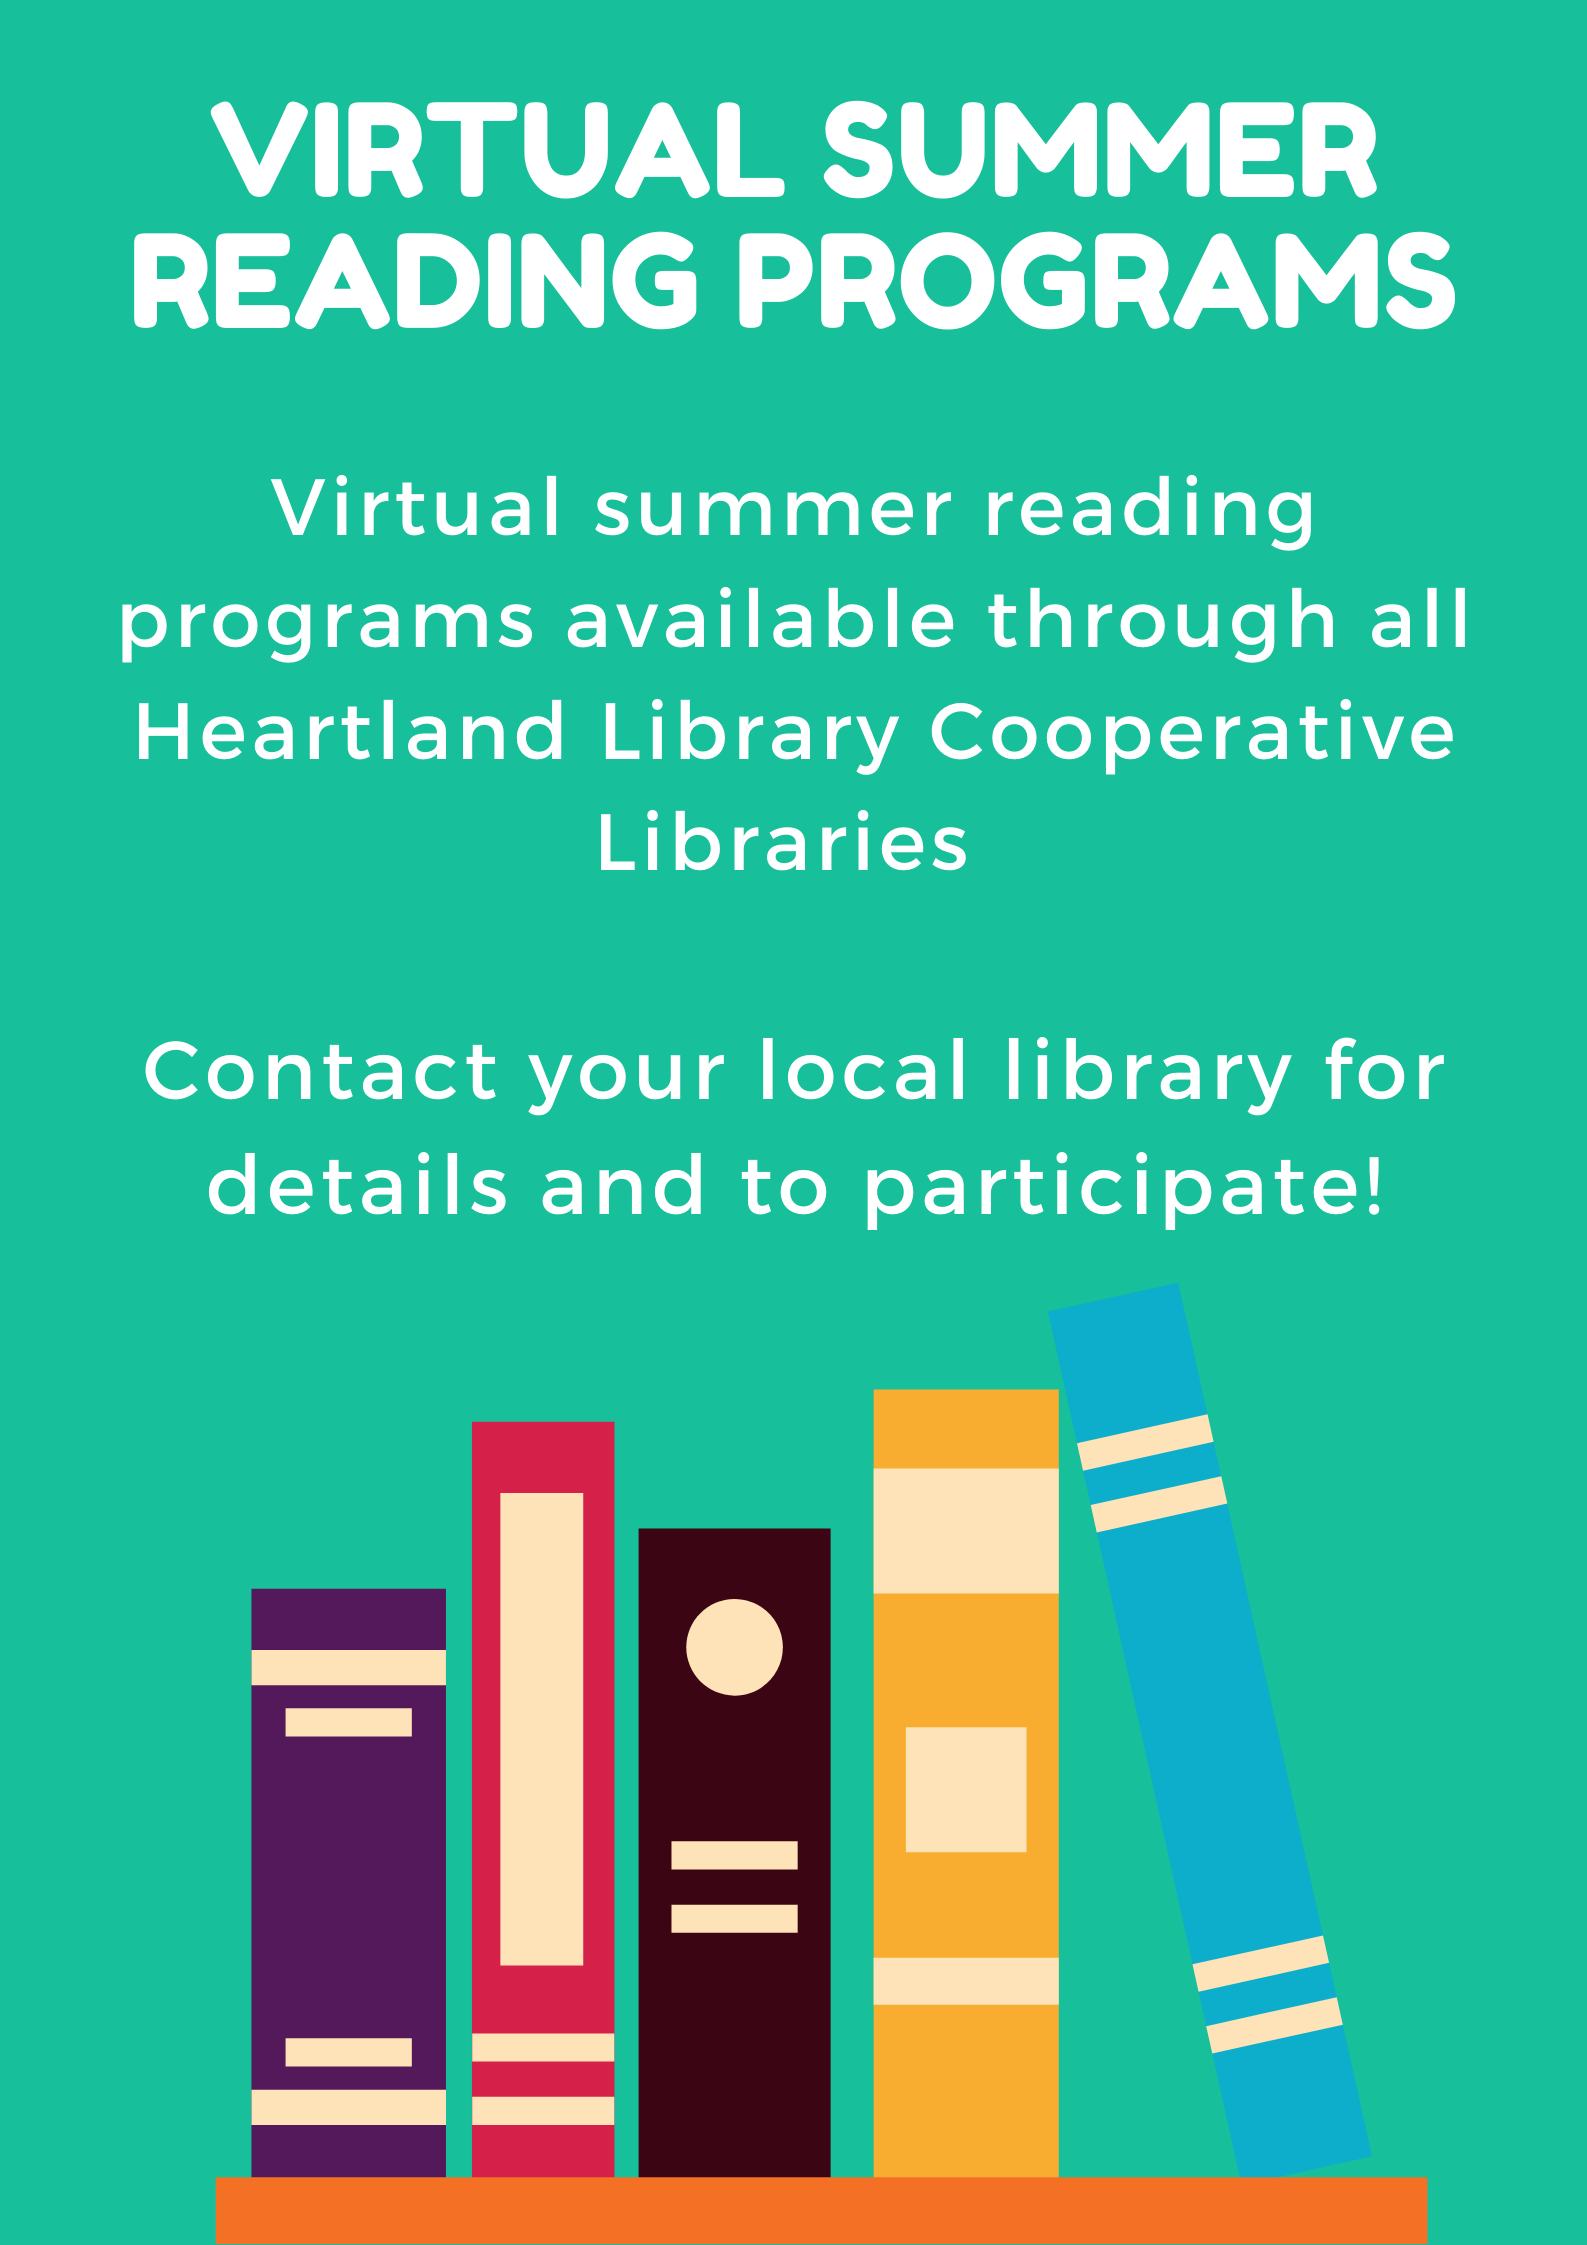 Summer reading programs are available through all Heartland Library Cooperative Libraries. Contact your local library to receive more information and/or to participate!